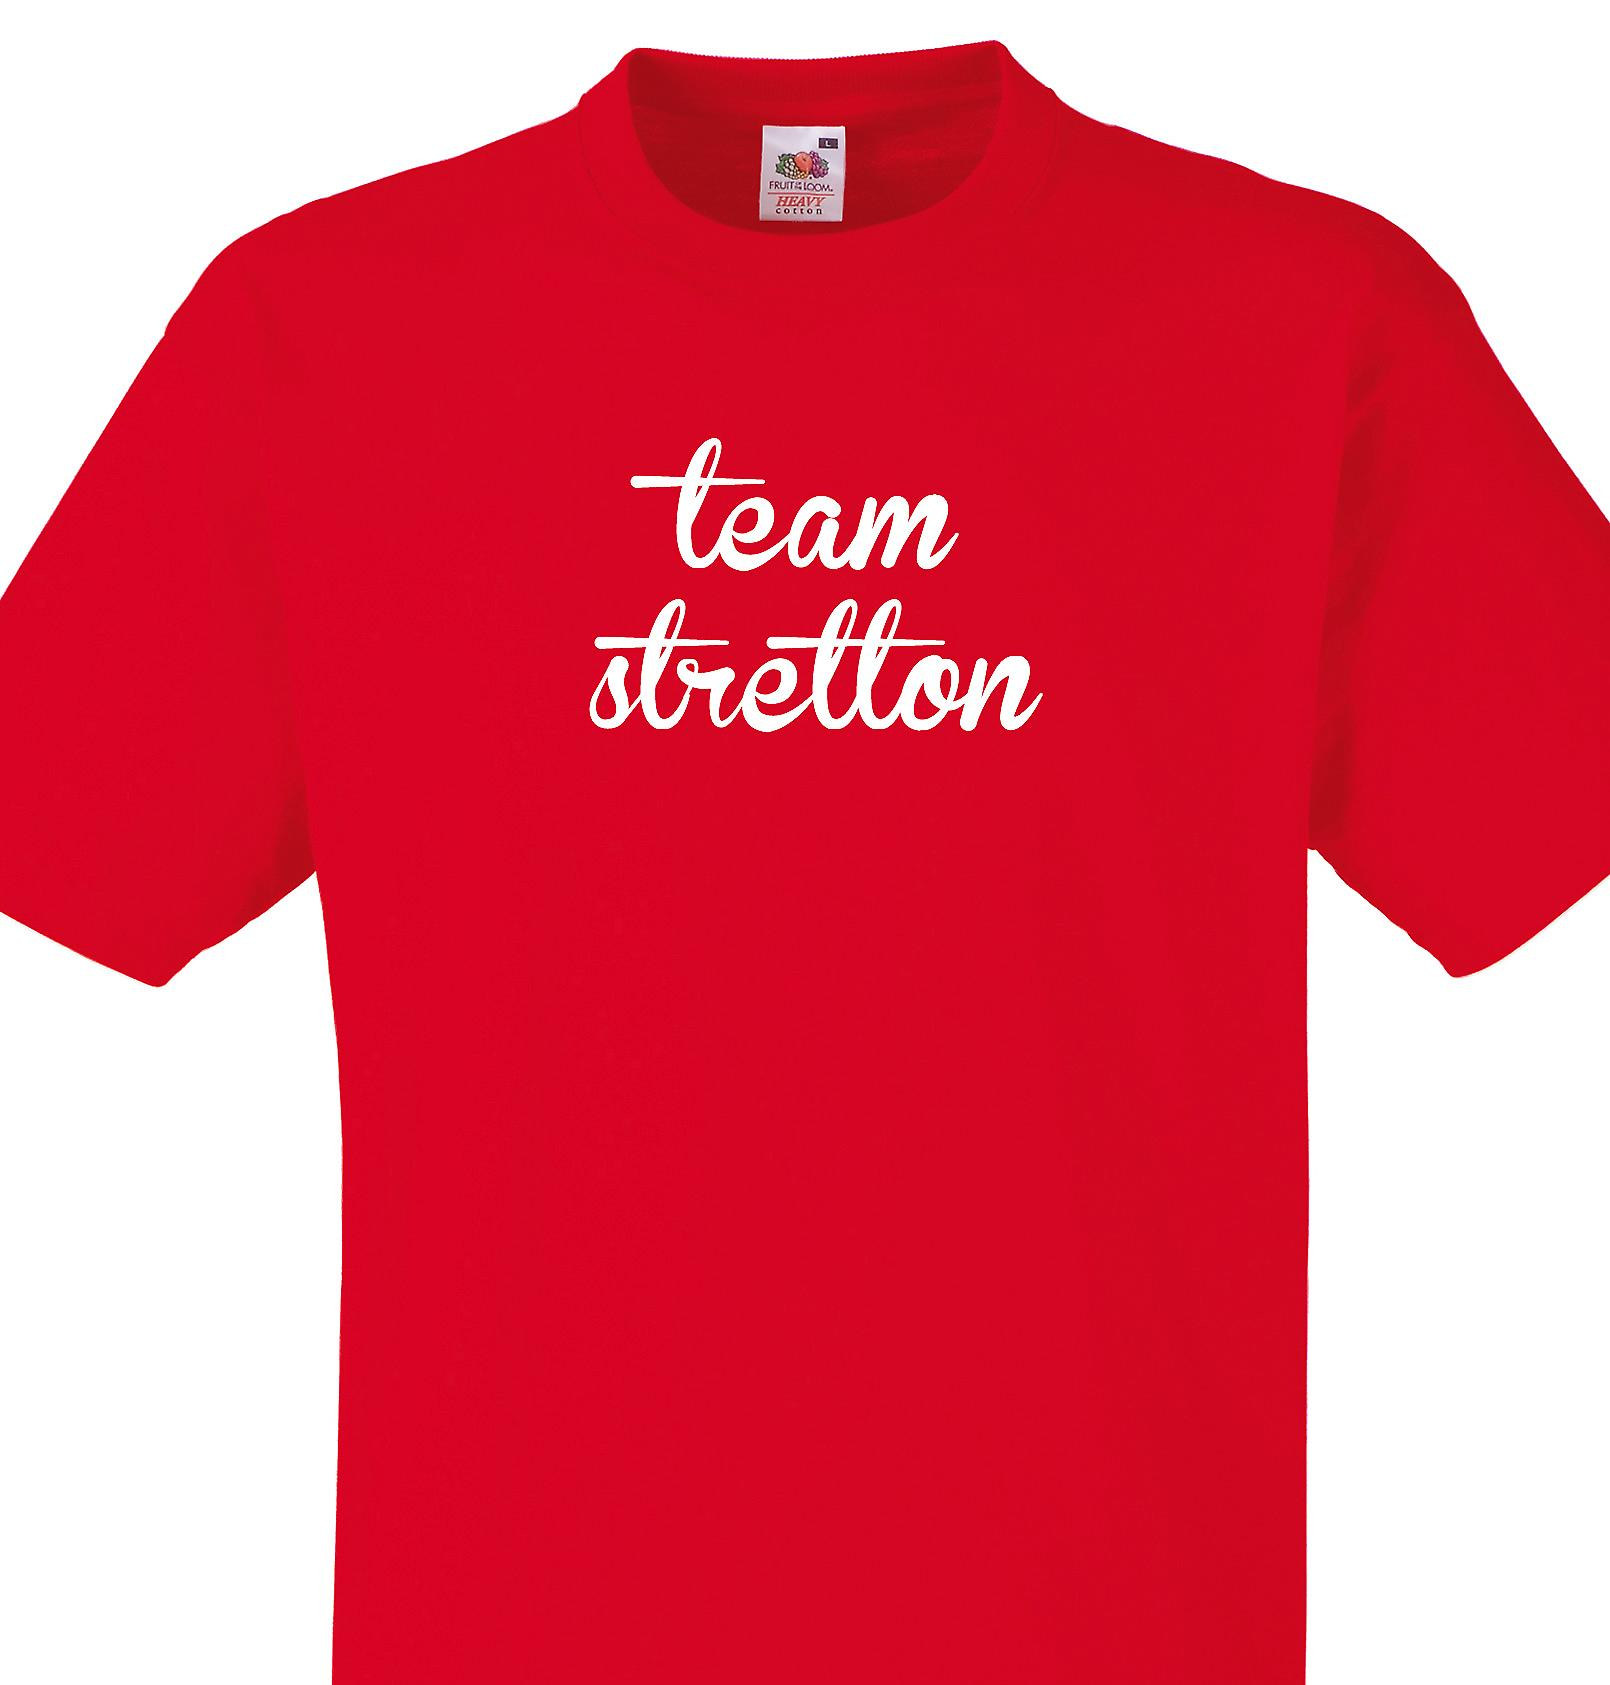 Team Stretton Red T shirt